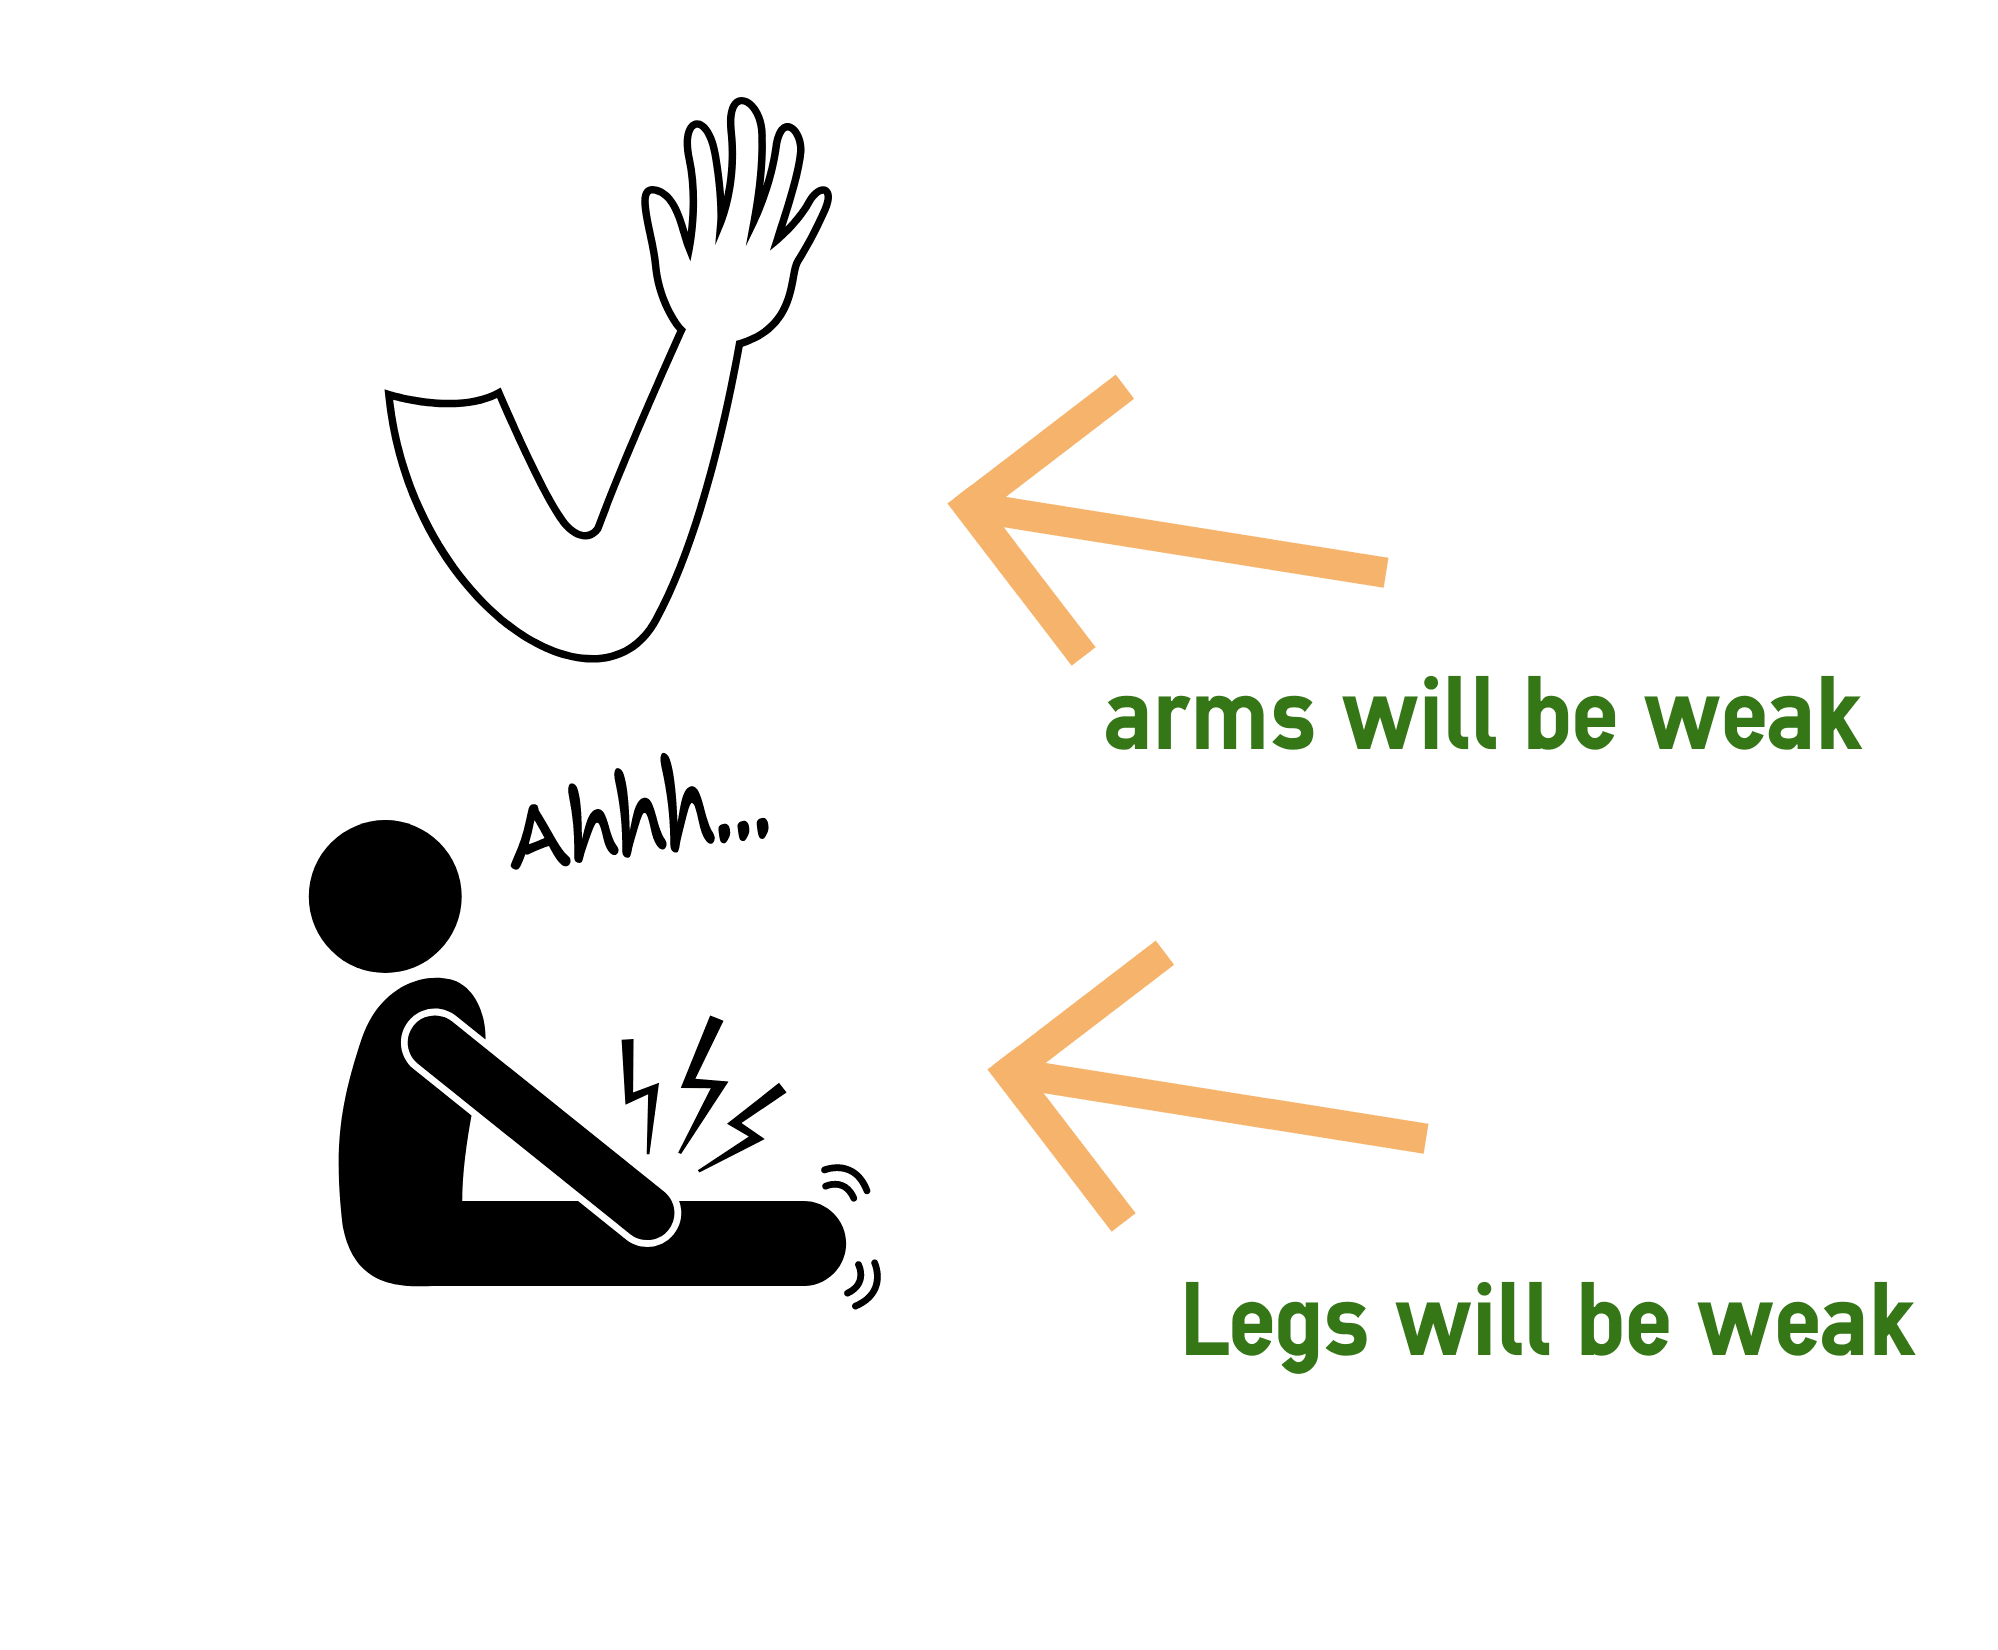 Your arms and legs will be weak